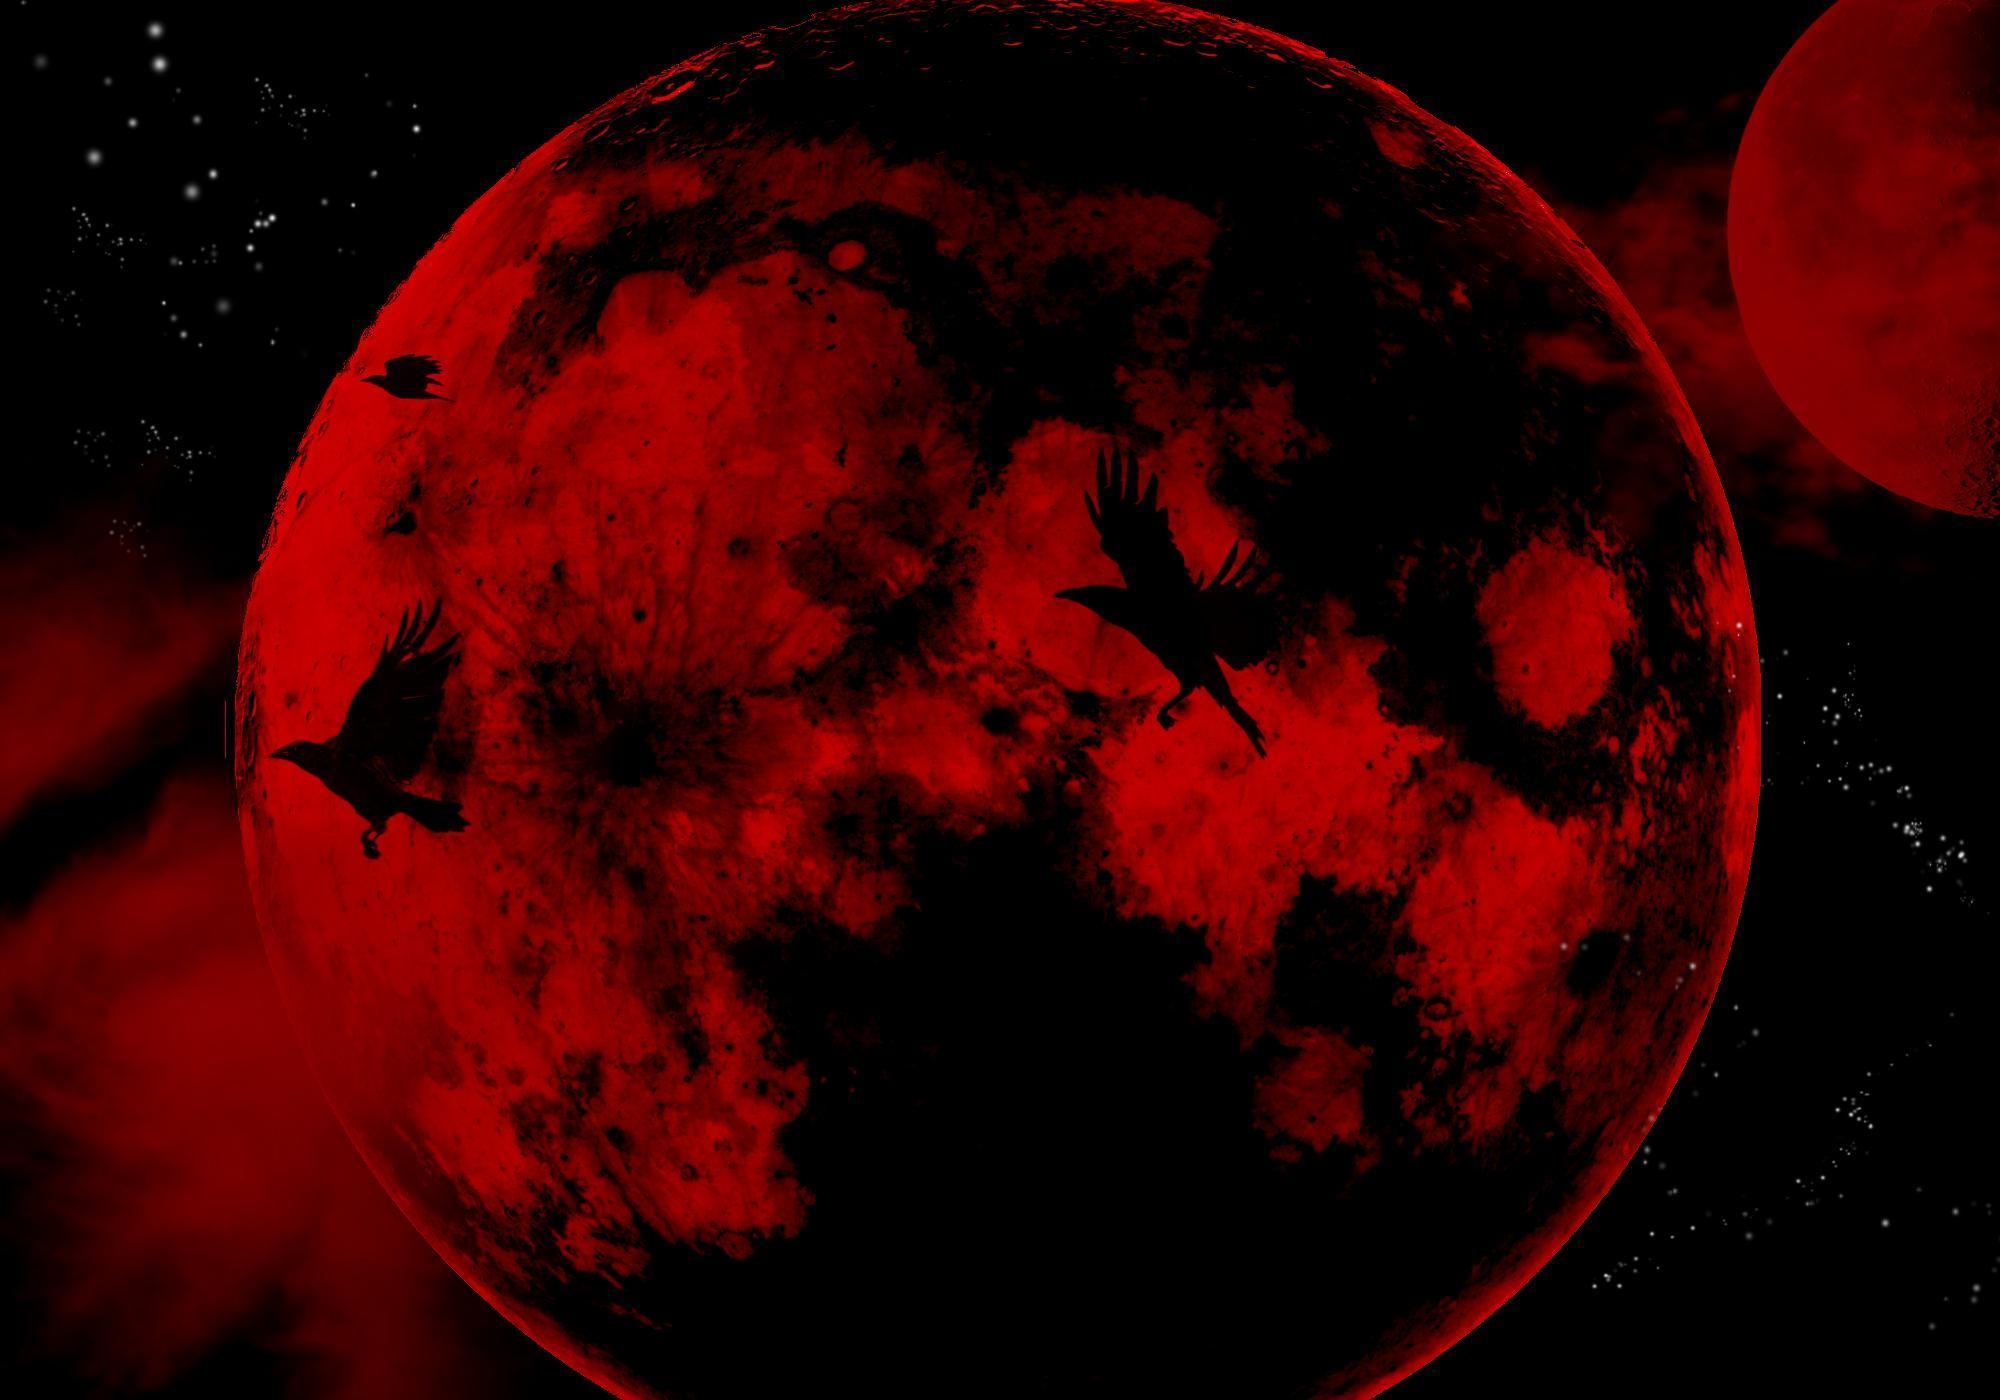 red moon vedano - photo #17